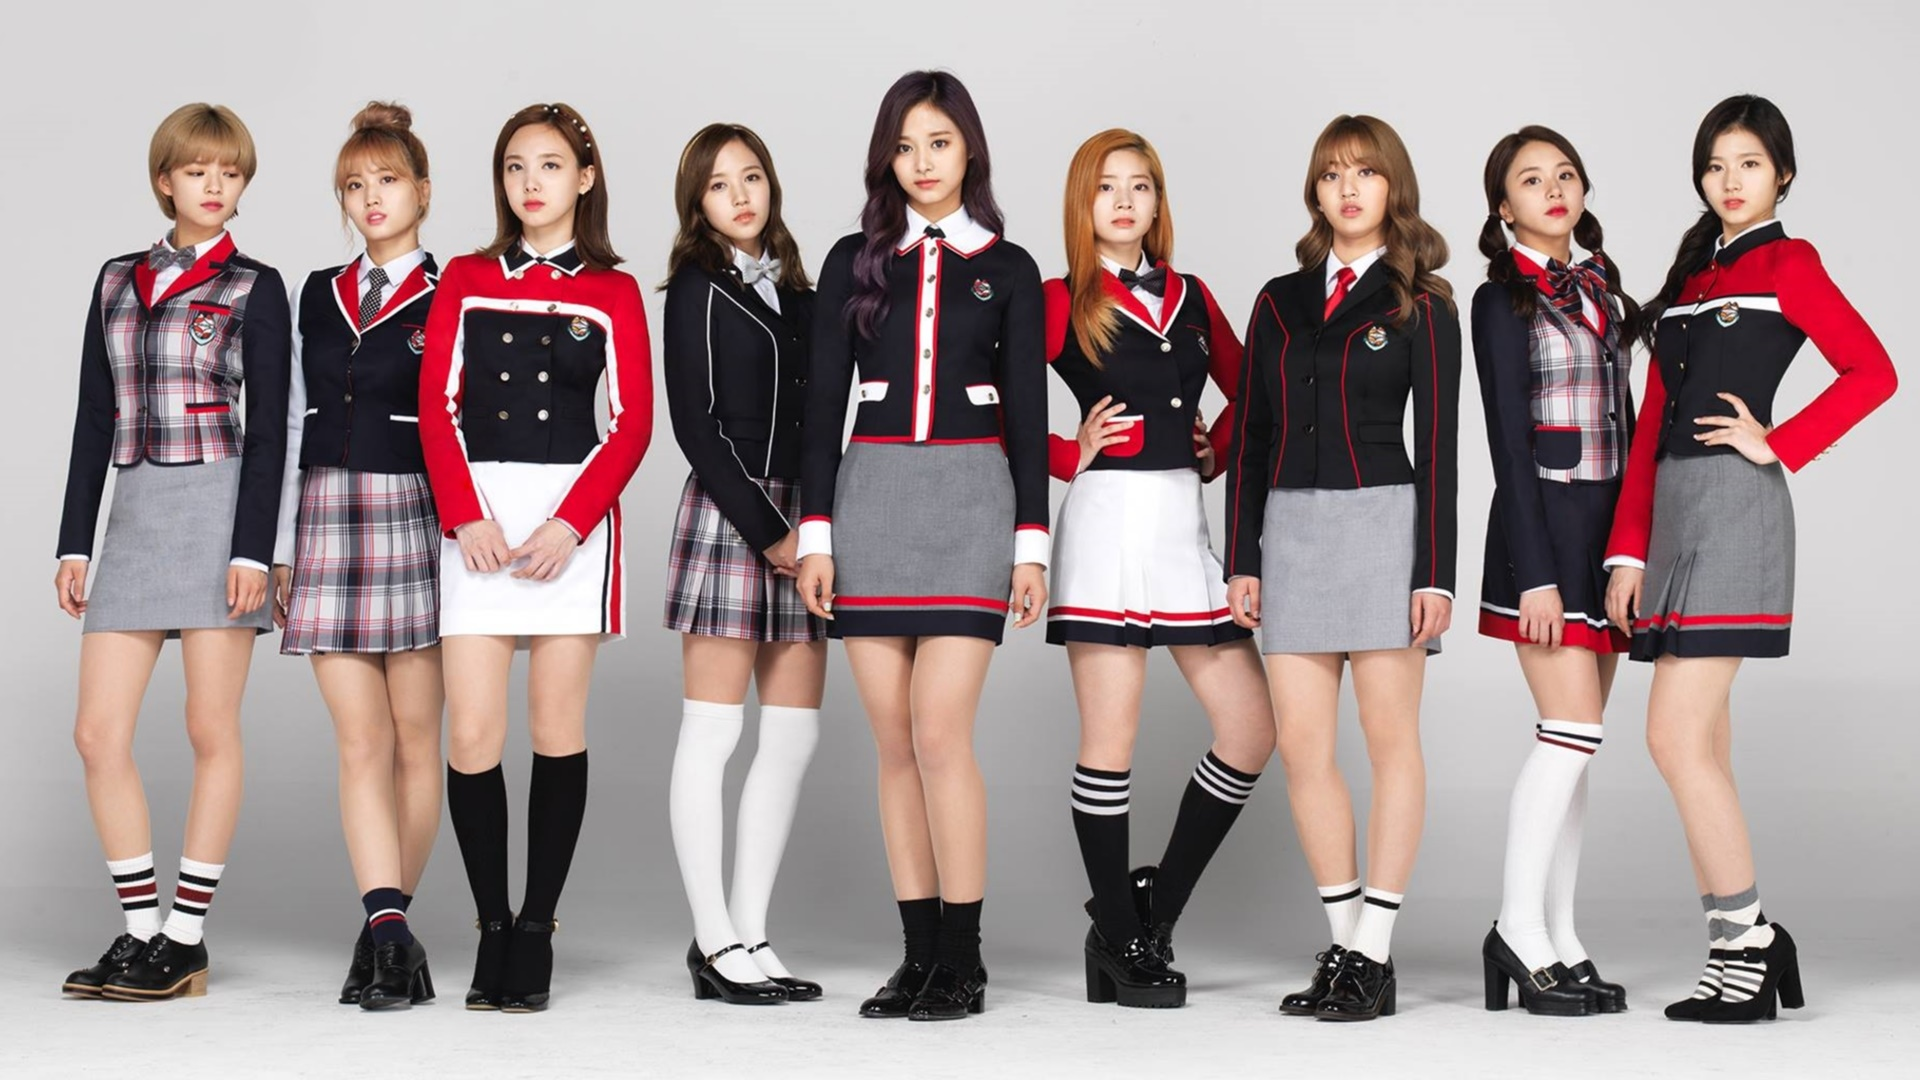 Twice Hd Wallpaper Background Image 1920x1080 Id 858064